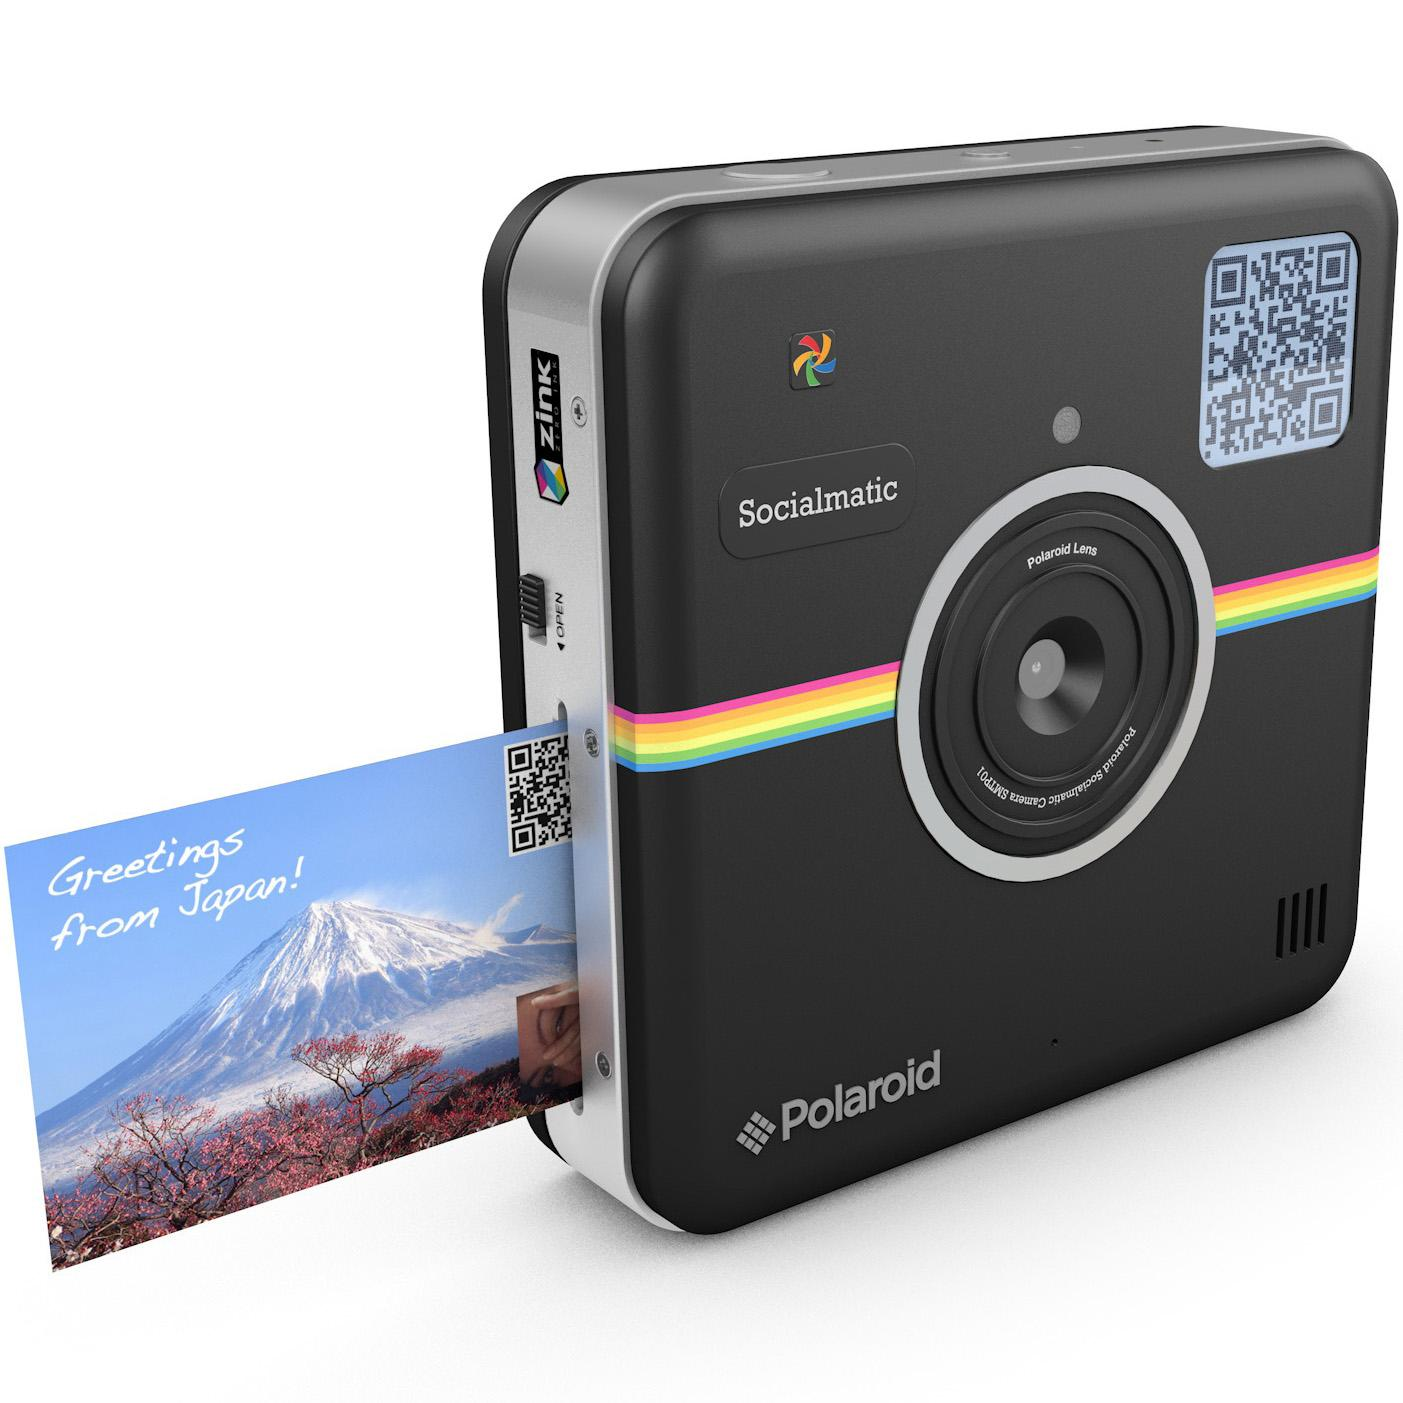 Amazon.com : Polaroid Socialmatic Instant Digital Camera